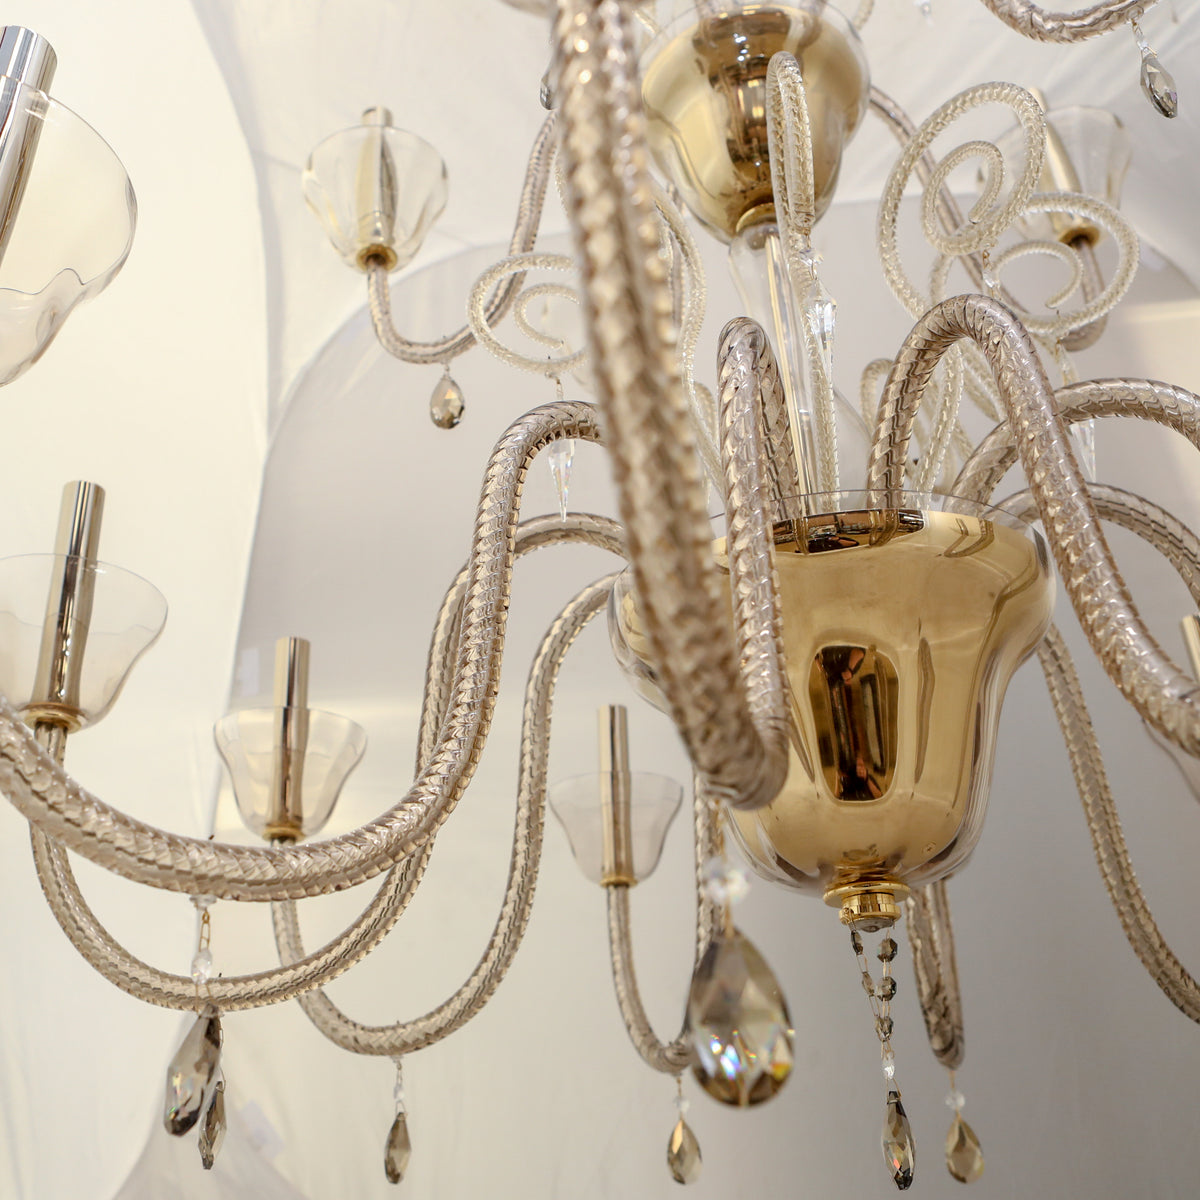 Reclaimed BEBY Italy Murano Glass Chandelier | The Architectural Forum